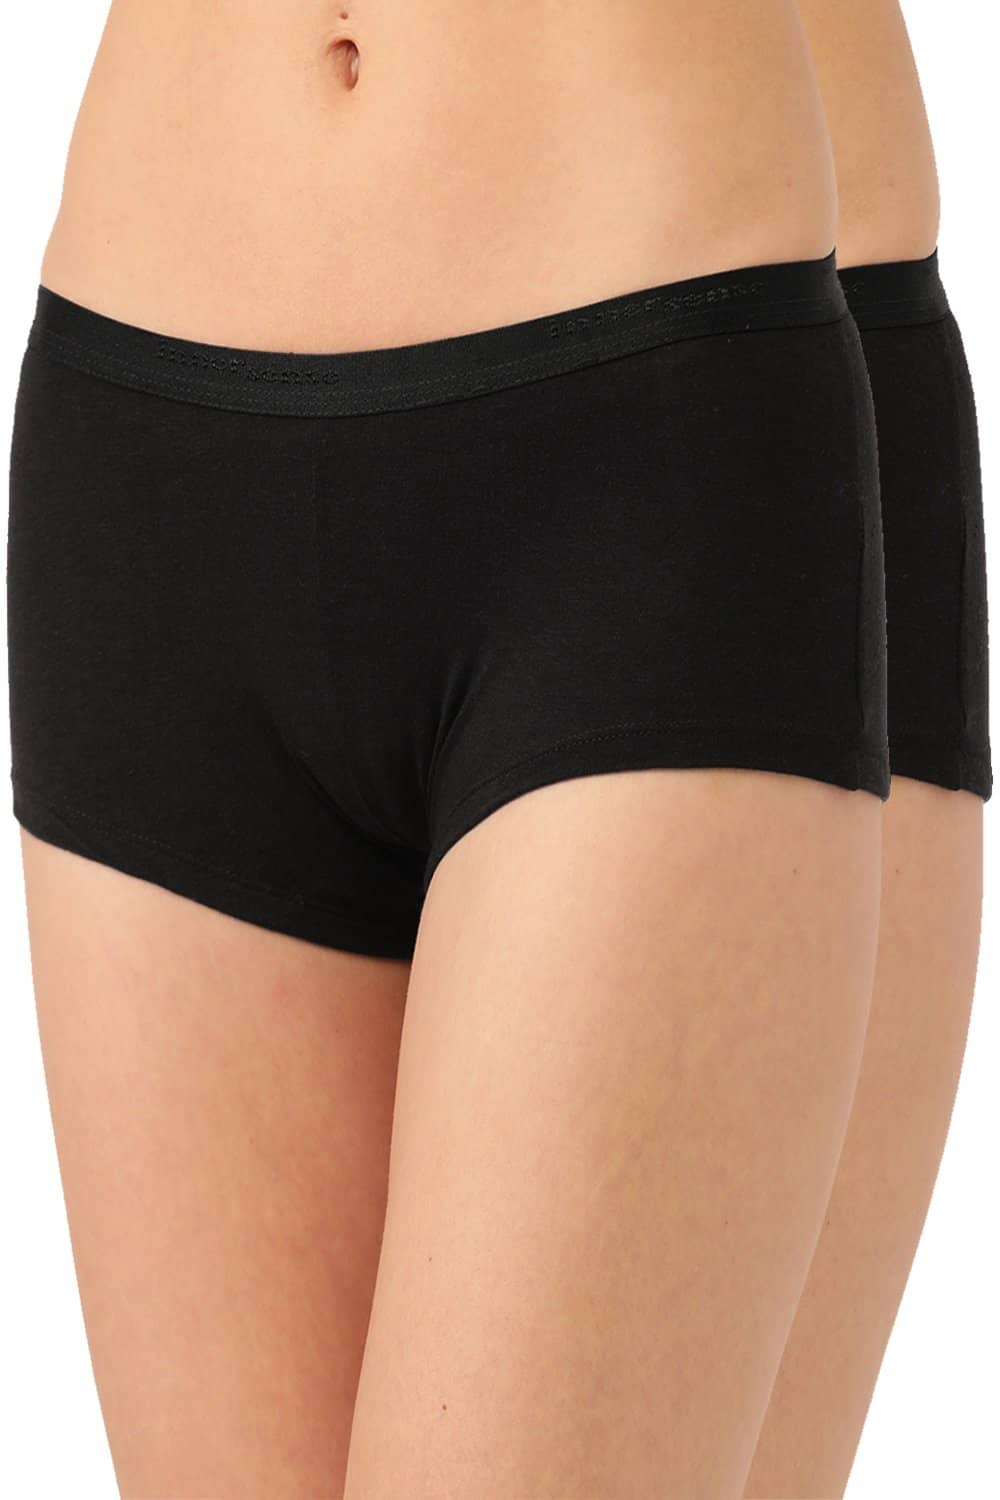 Inner Sense Organic Cotton Antimicrobial BoyShorts (Pack Of 2)